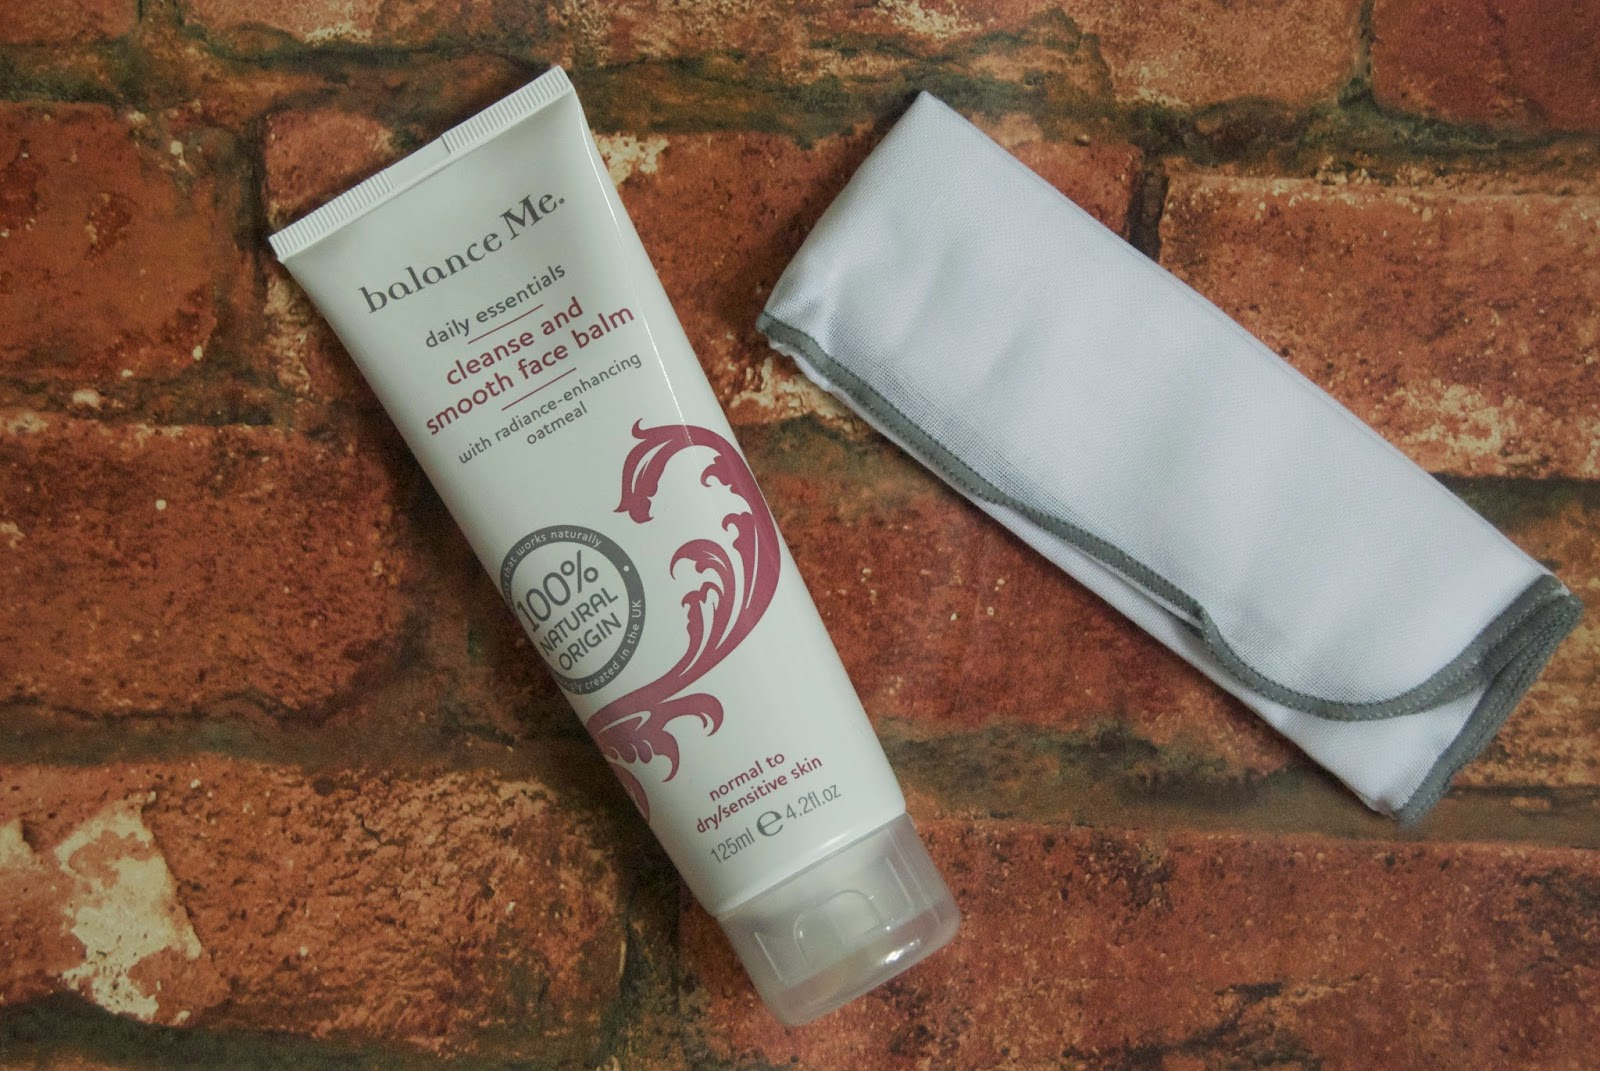 balance me cleanse & smooth face balm review